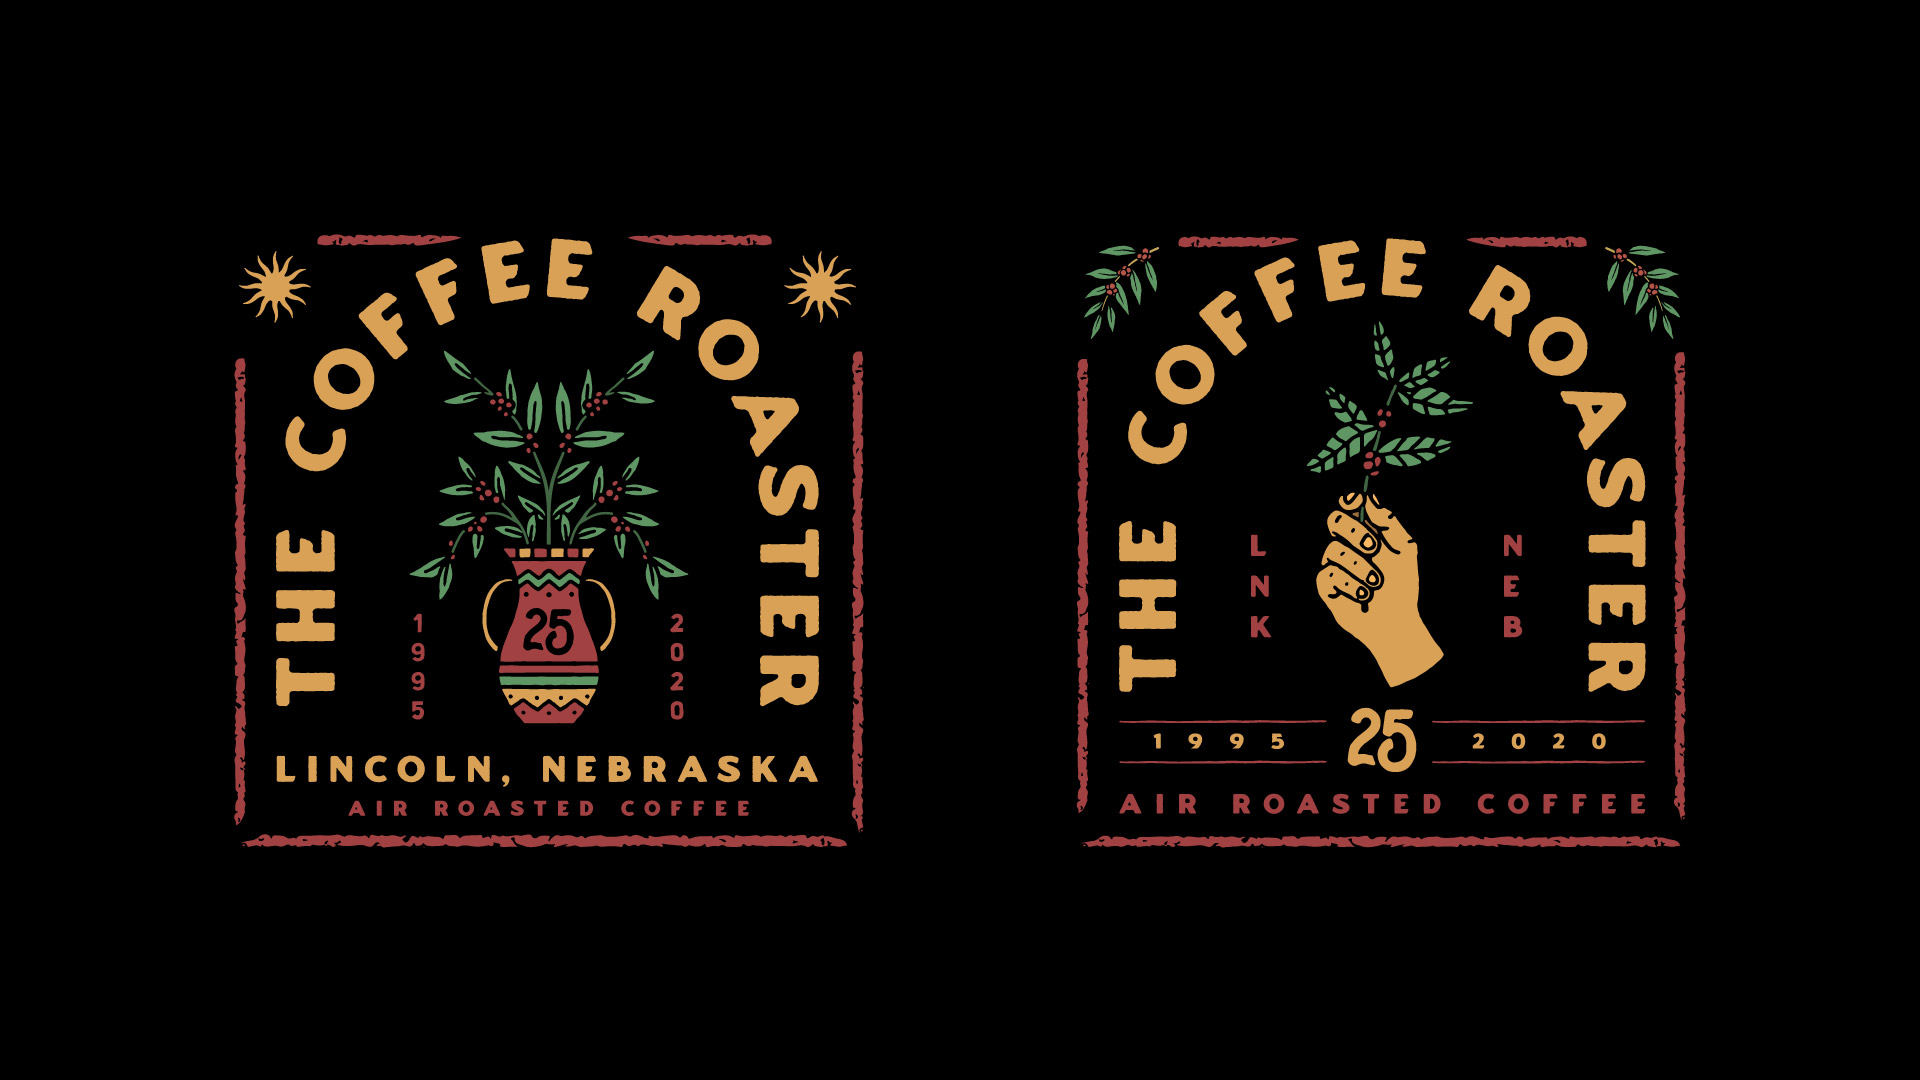 The Coffee Roaster T-shirt designs